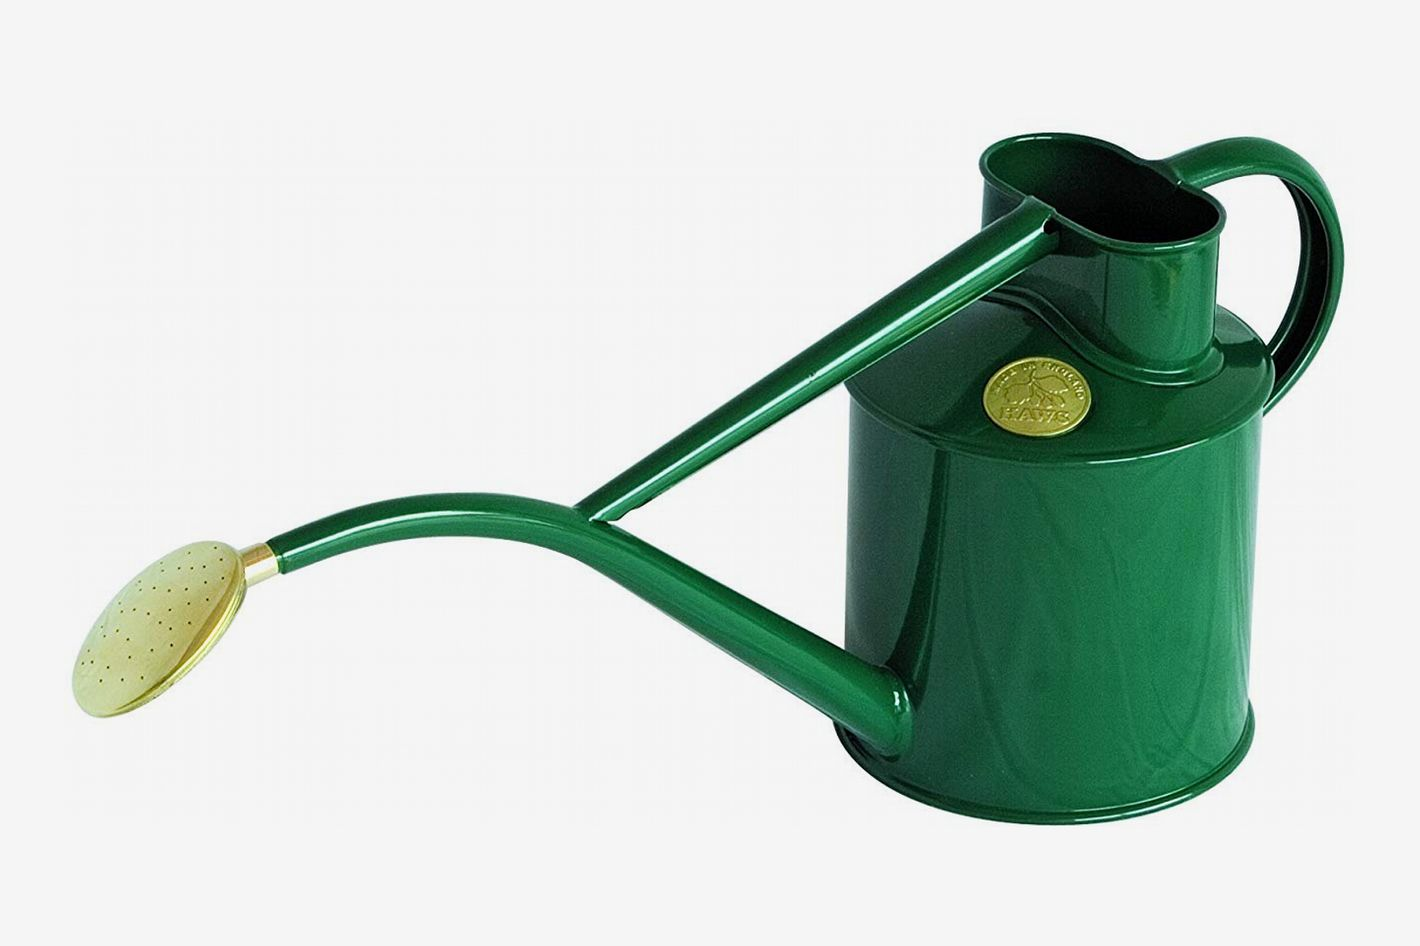 Haws Indoor Painted Metal Watering Can With Rose And Gift Box 2 Pint 1 Liter Green